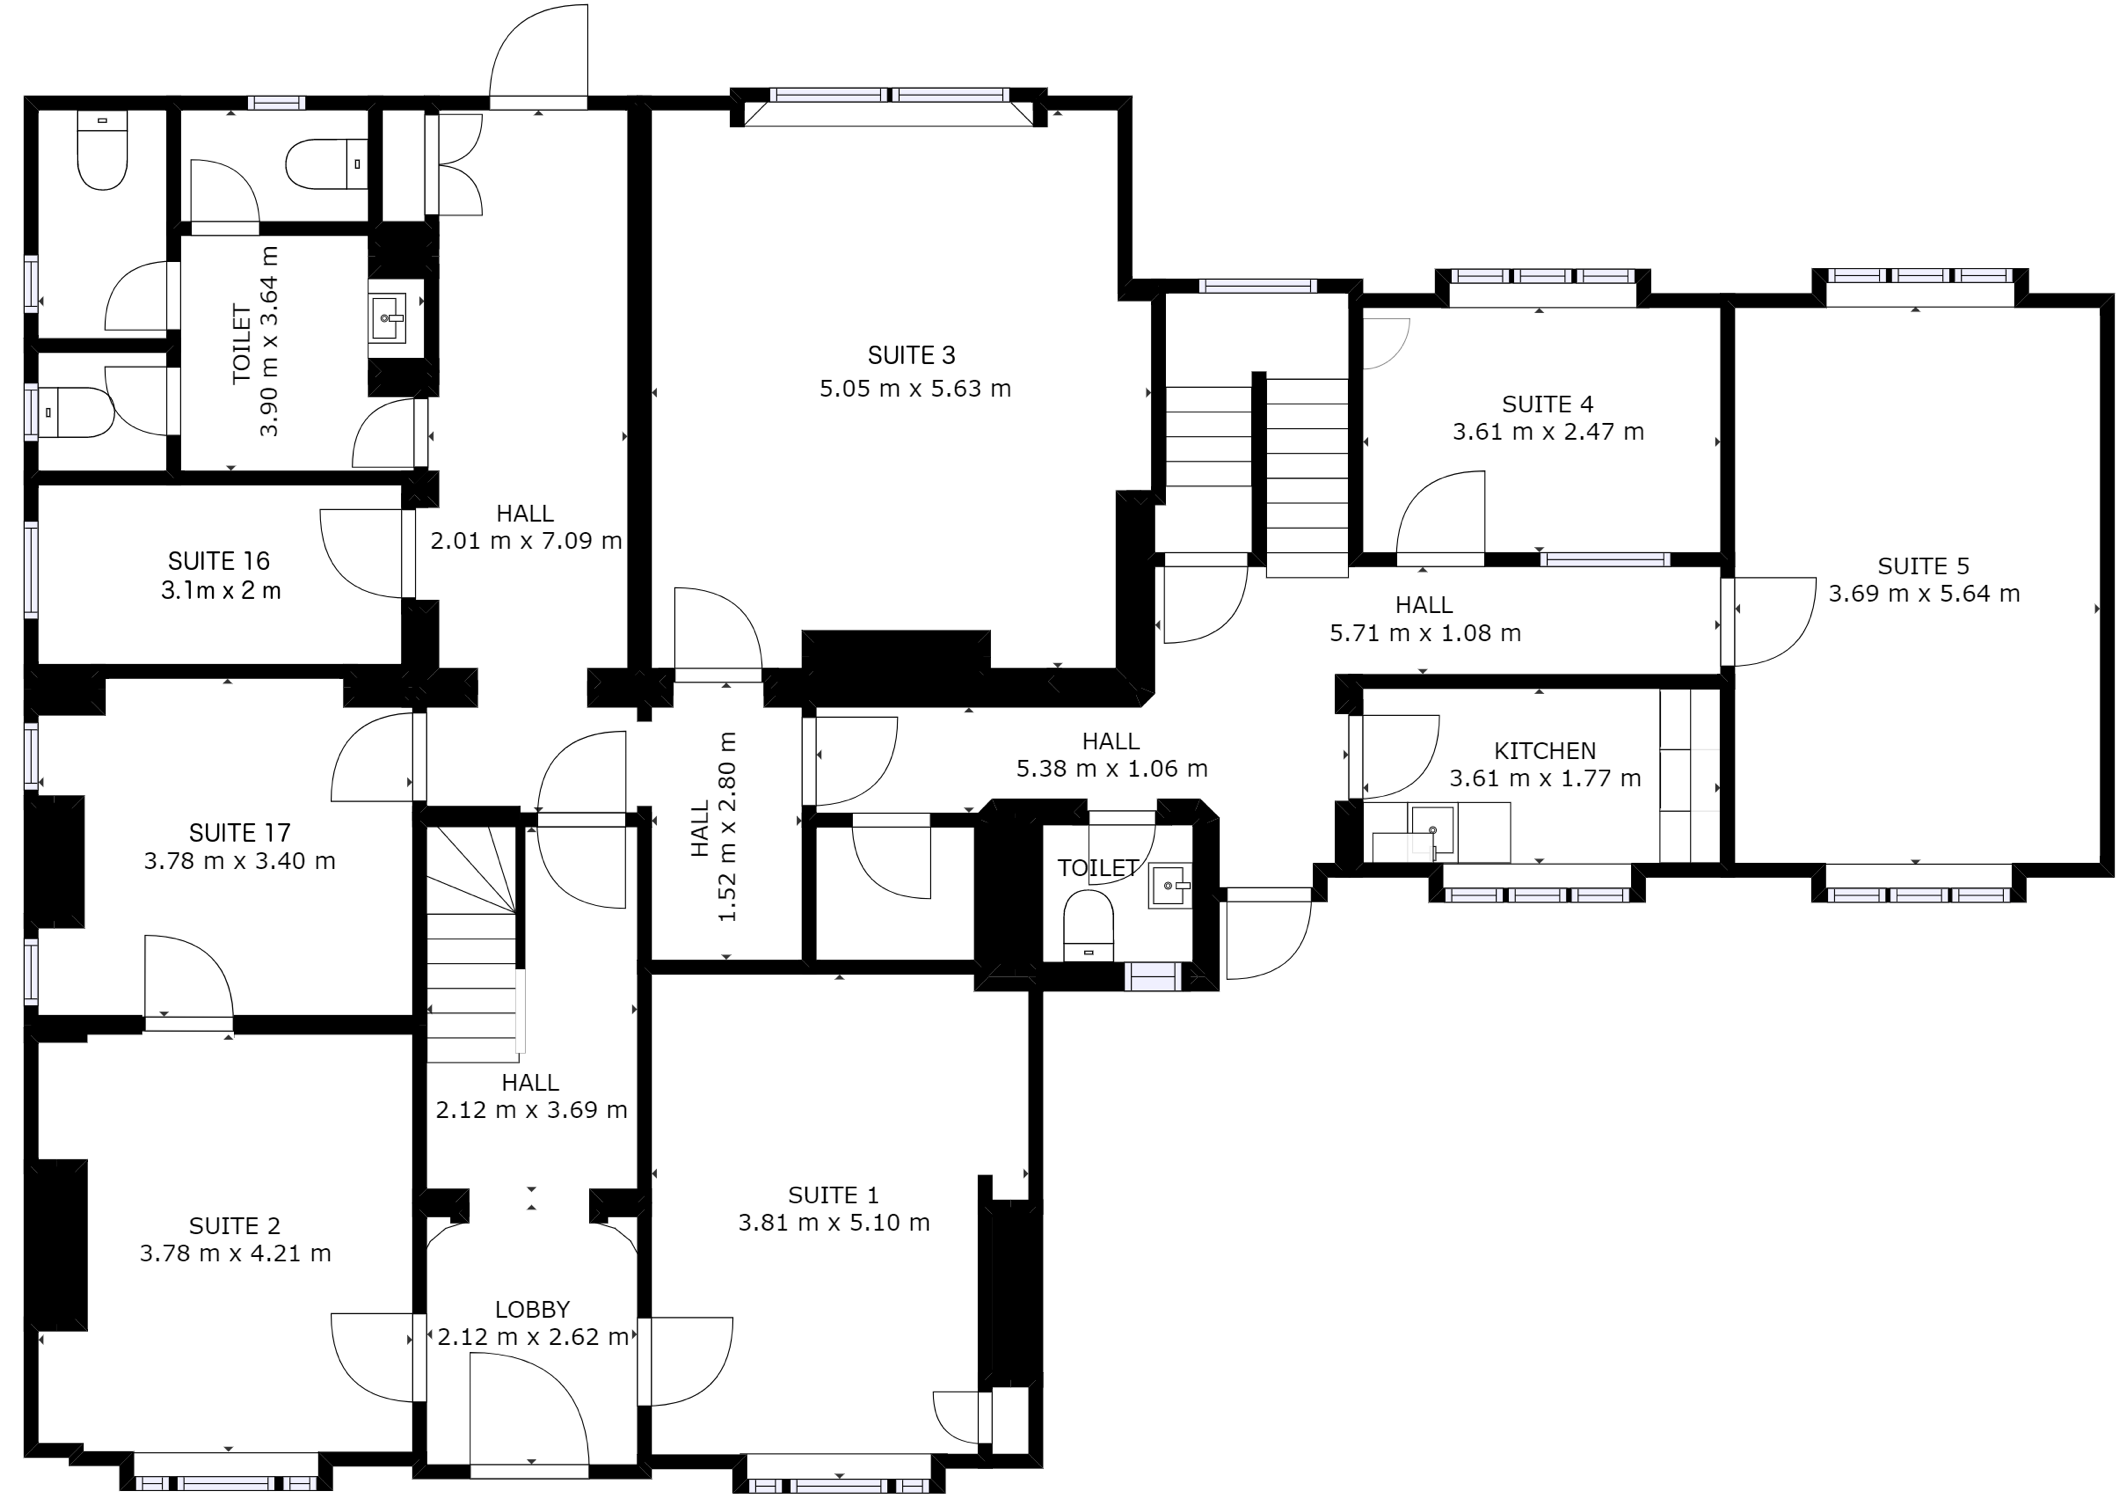 Ground floor office plan of Harpenden business centre, Rivers Lodge